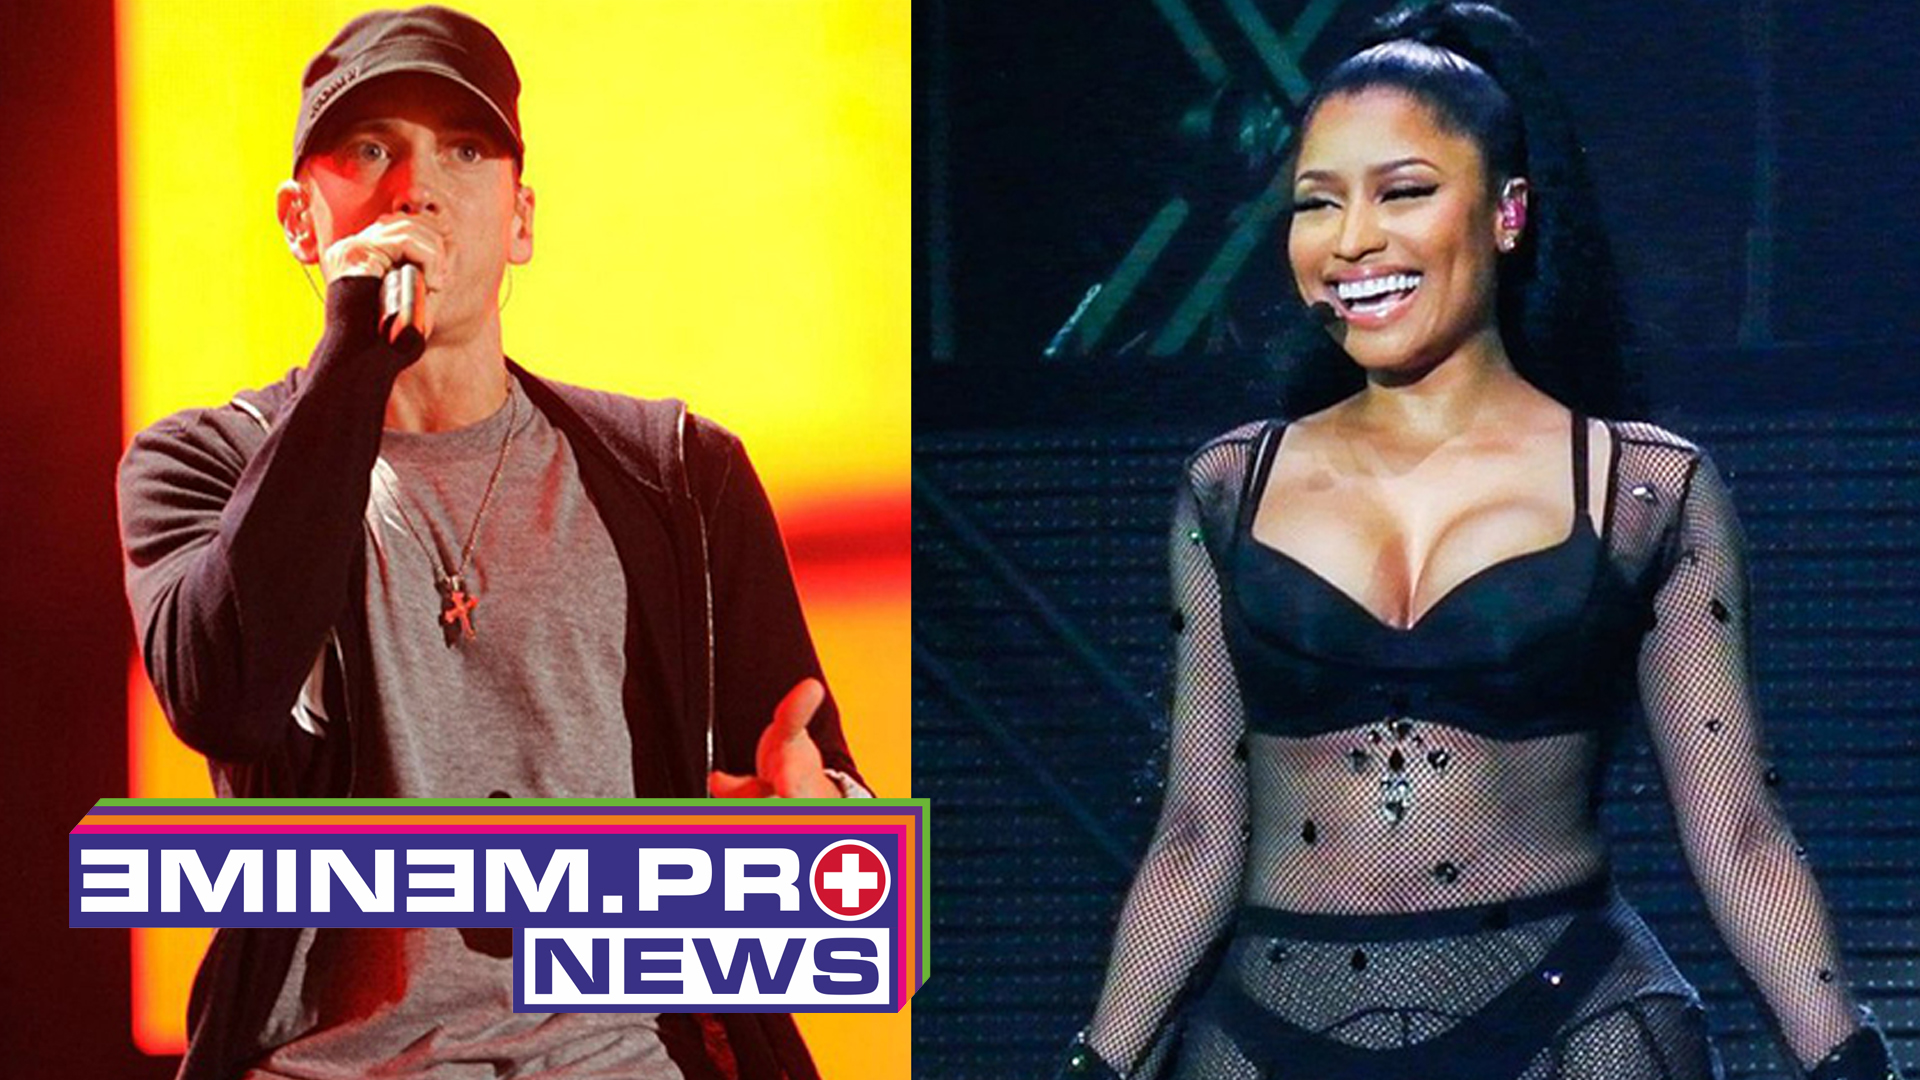 ePro News 78: Nicki Minaj replied to Eminem's puns and is hoping for a collaboration